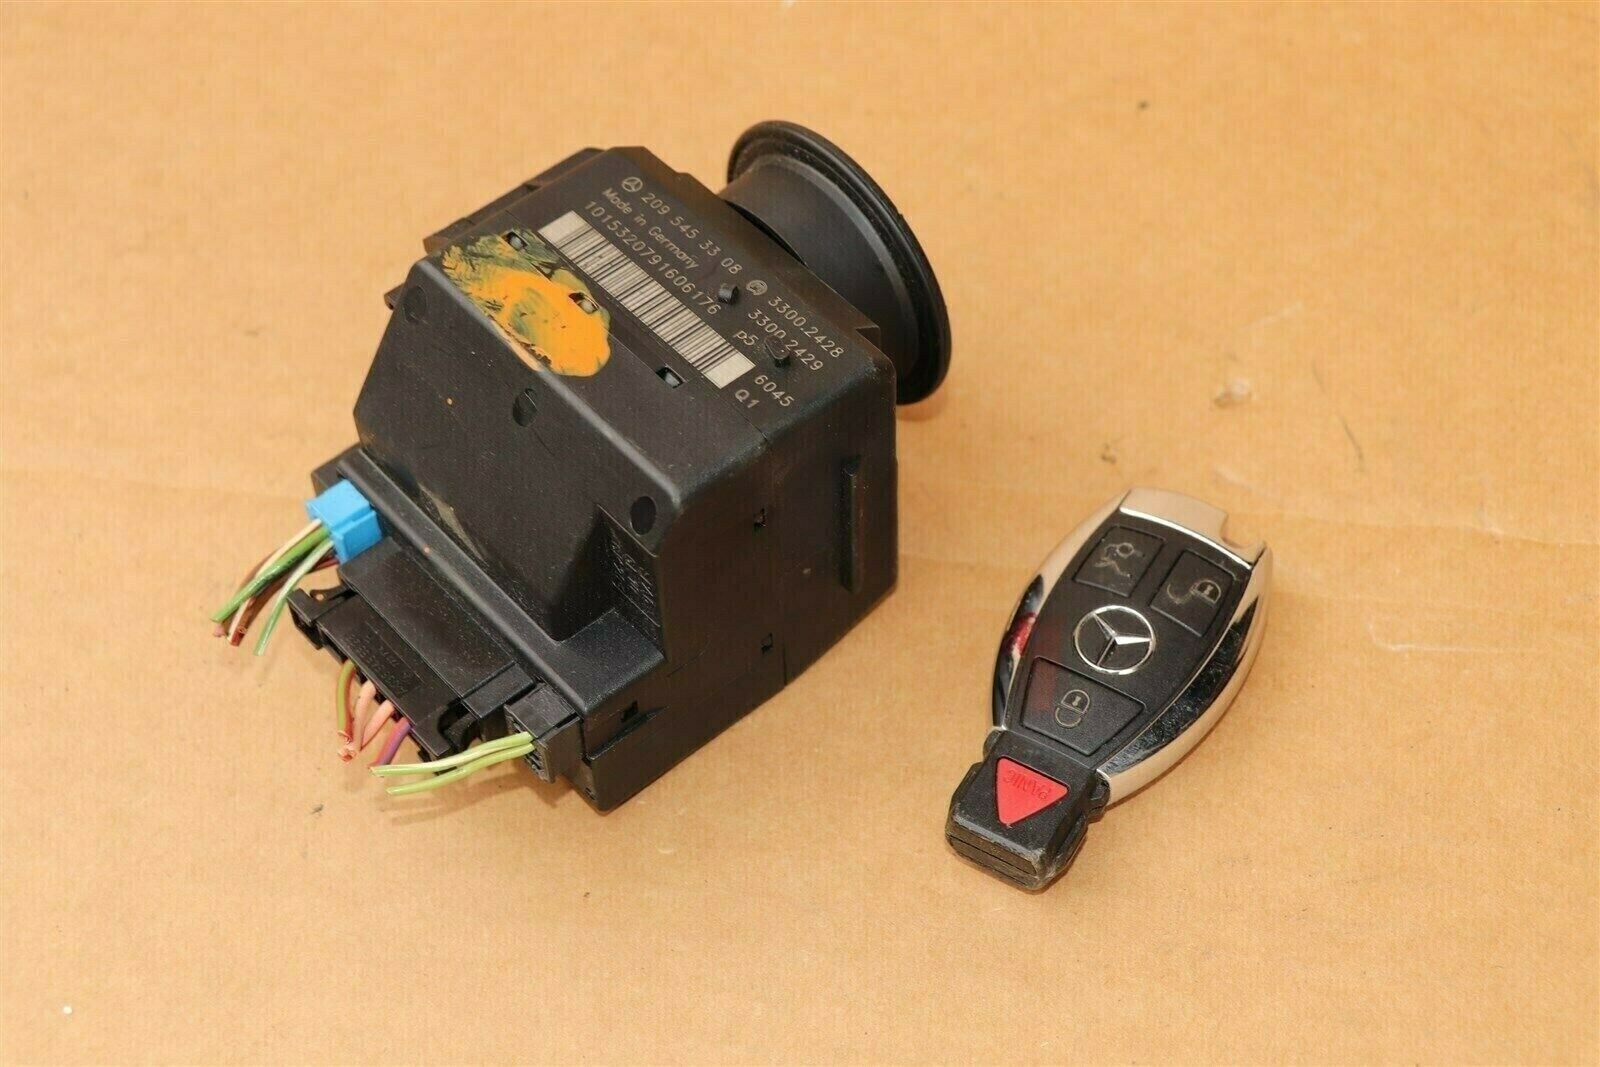 Mercedes Ignition Start Switch Module & Key Fob Keyless Entry Remote 2095453308